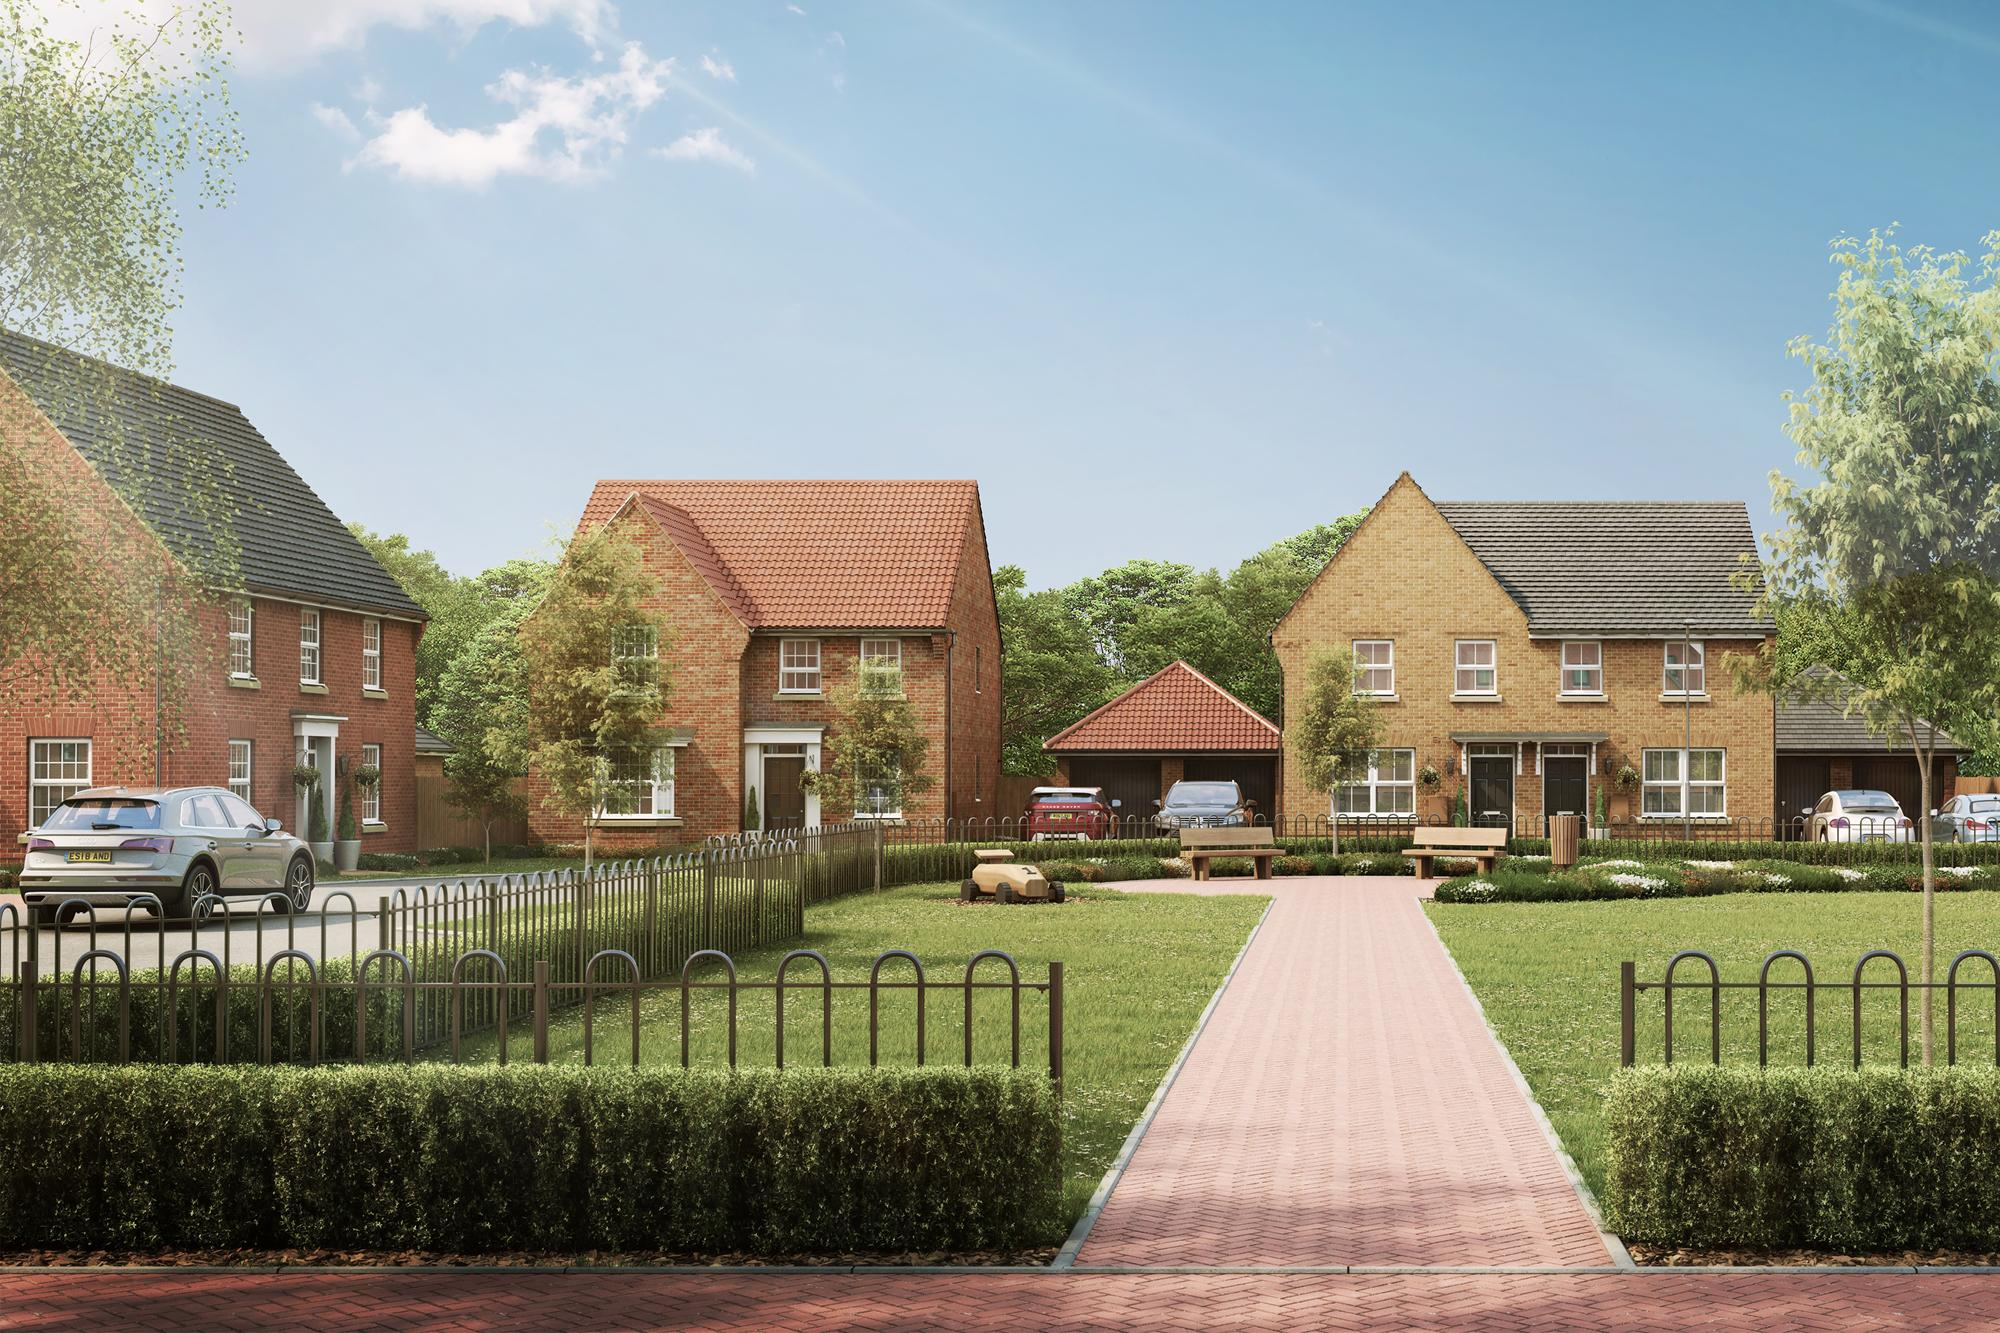 New Build Homes in Horsford